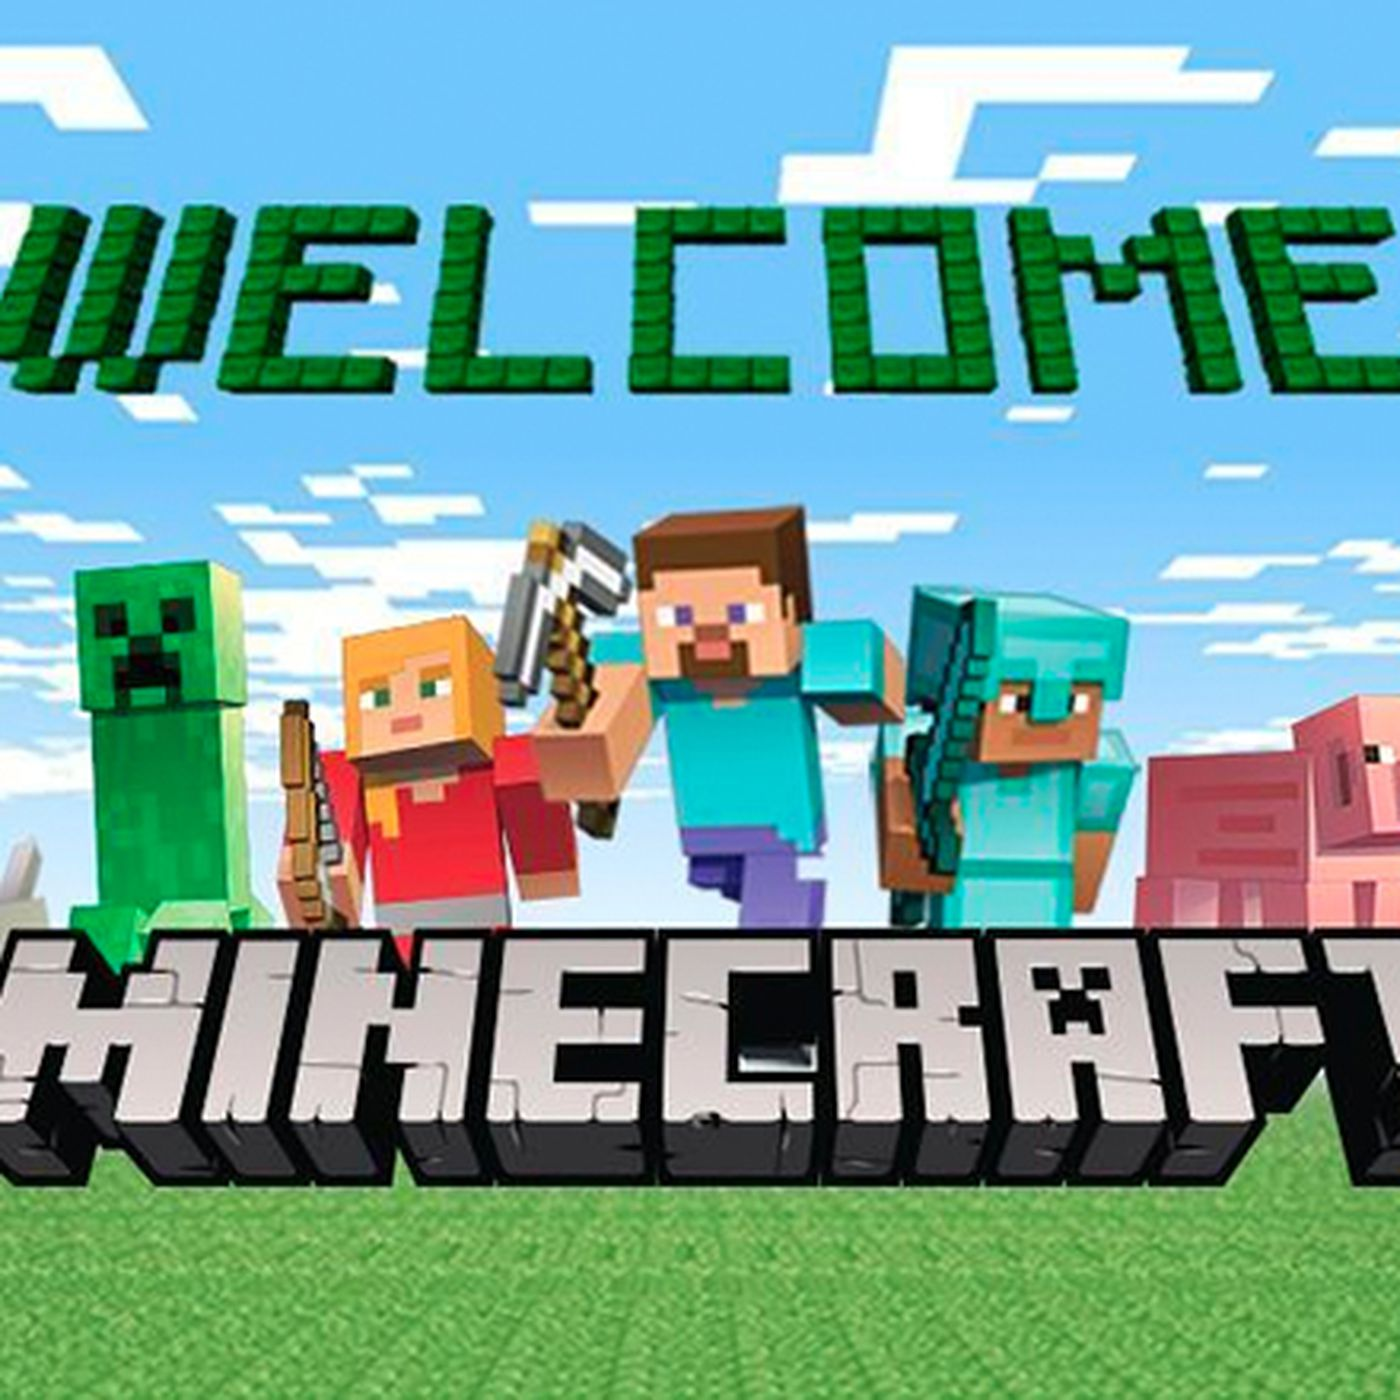 Microsoft Confirms It Will Buy Minecraft For 25 Billion